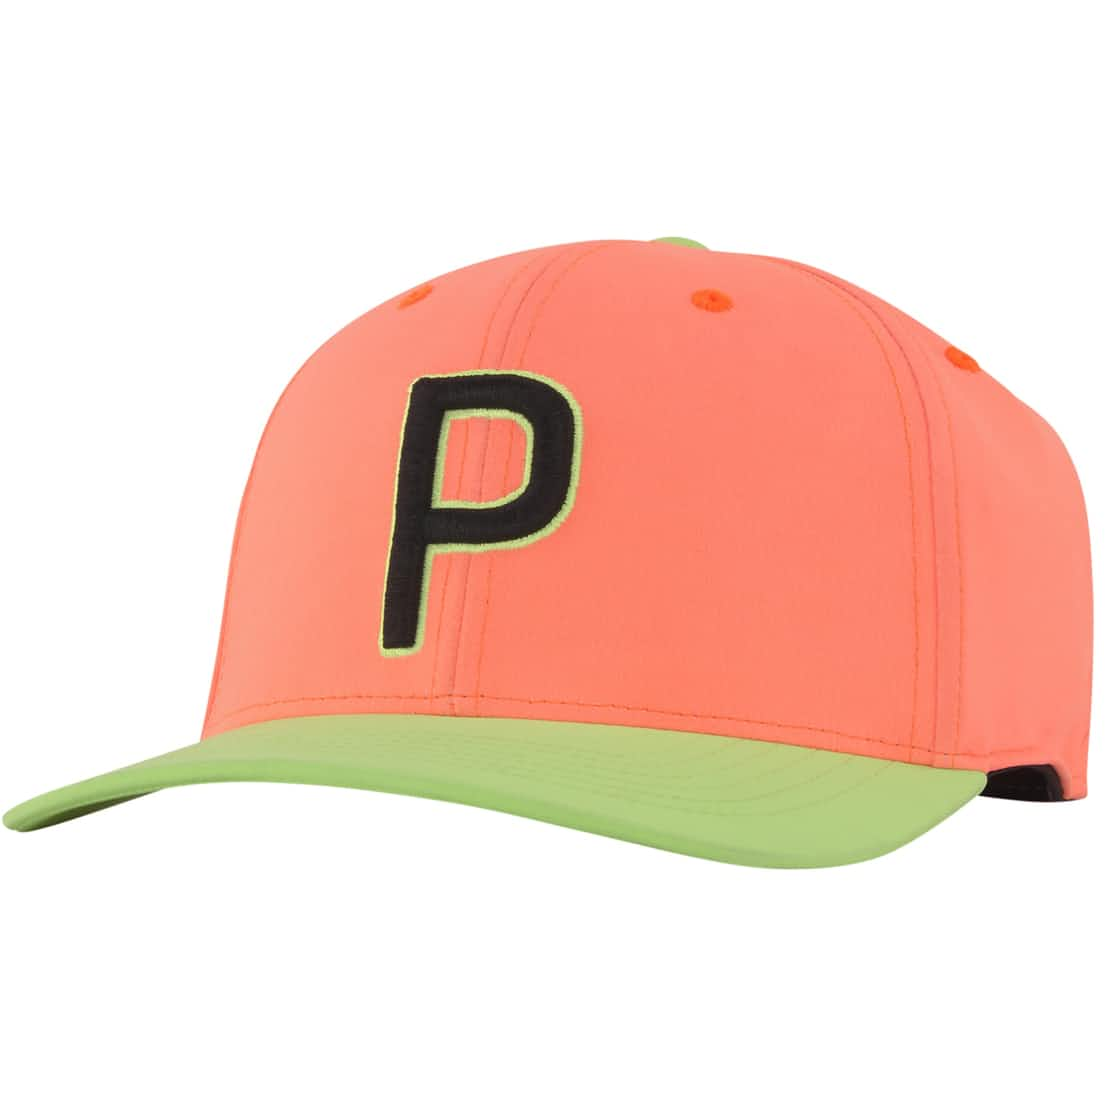 110 P Cap Rise Up Nrgy Peach/Fizzy Yellow - AW20